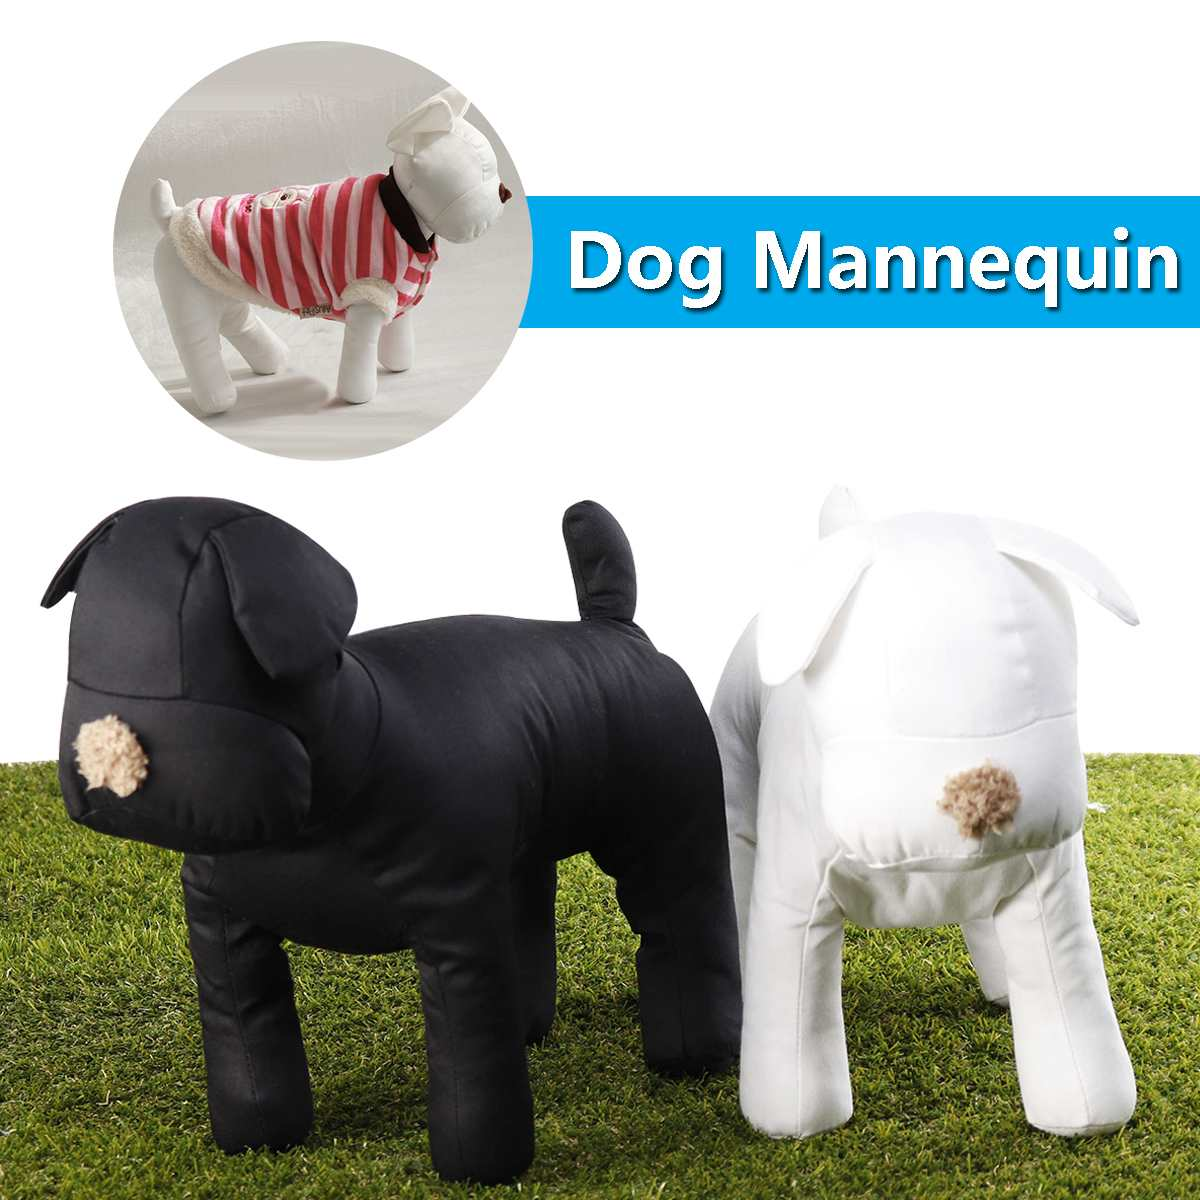 Dog Mannequin Cotton Stuffed Model Clothing Apparel Shop Collar Display Pet Toy Black/White Adjusted Leg Poses For Retail Store